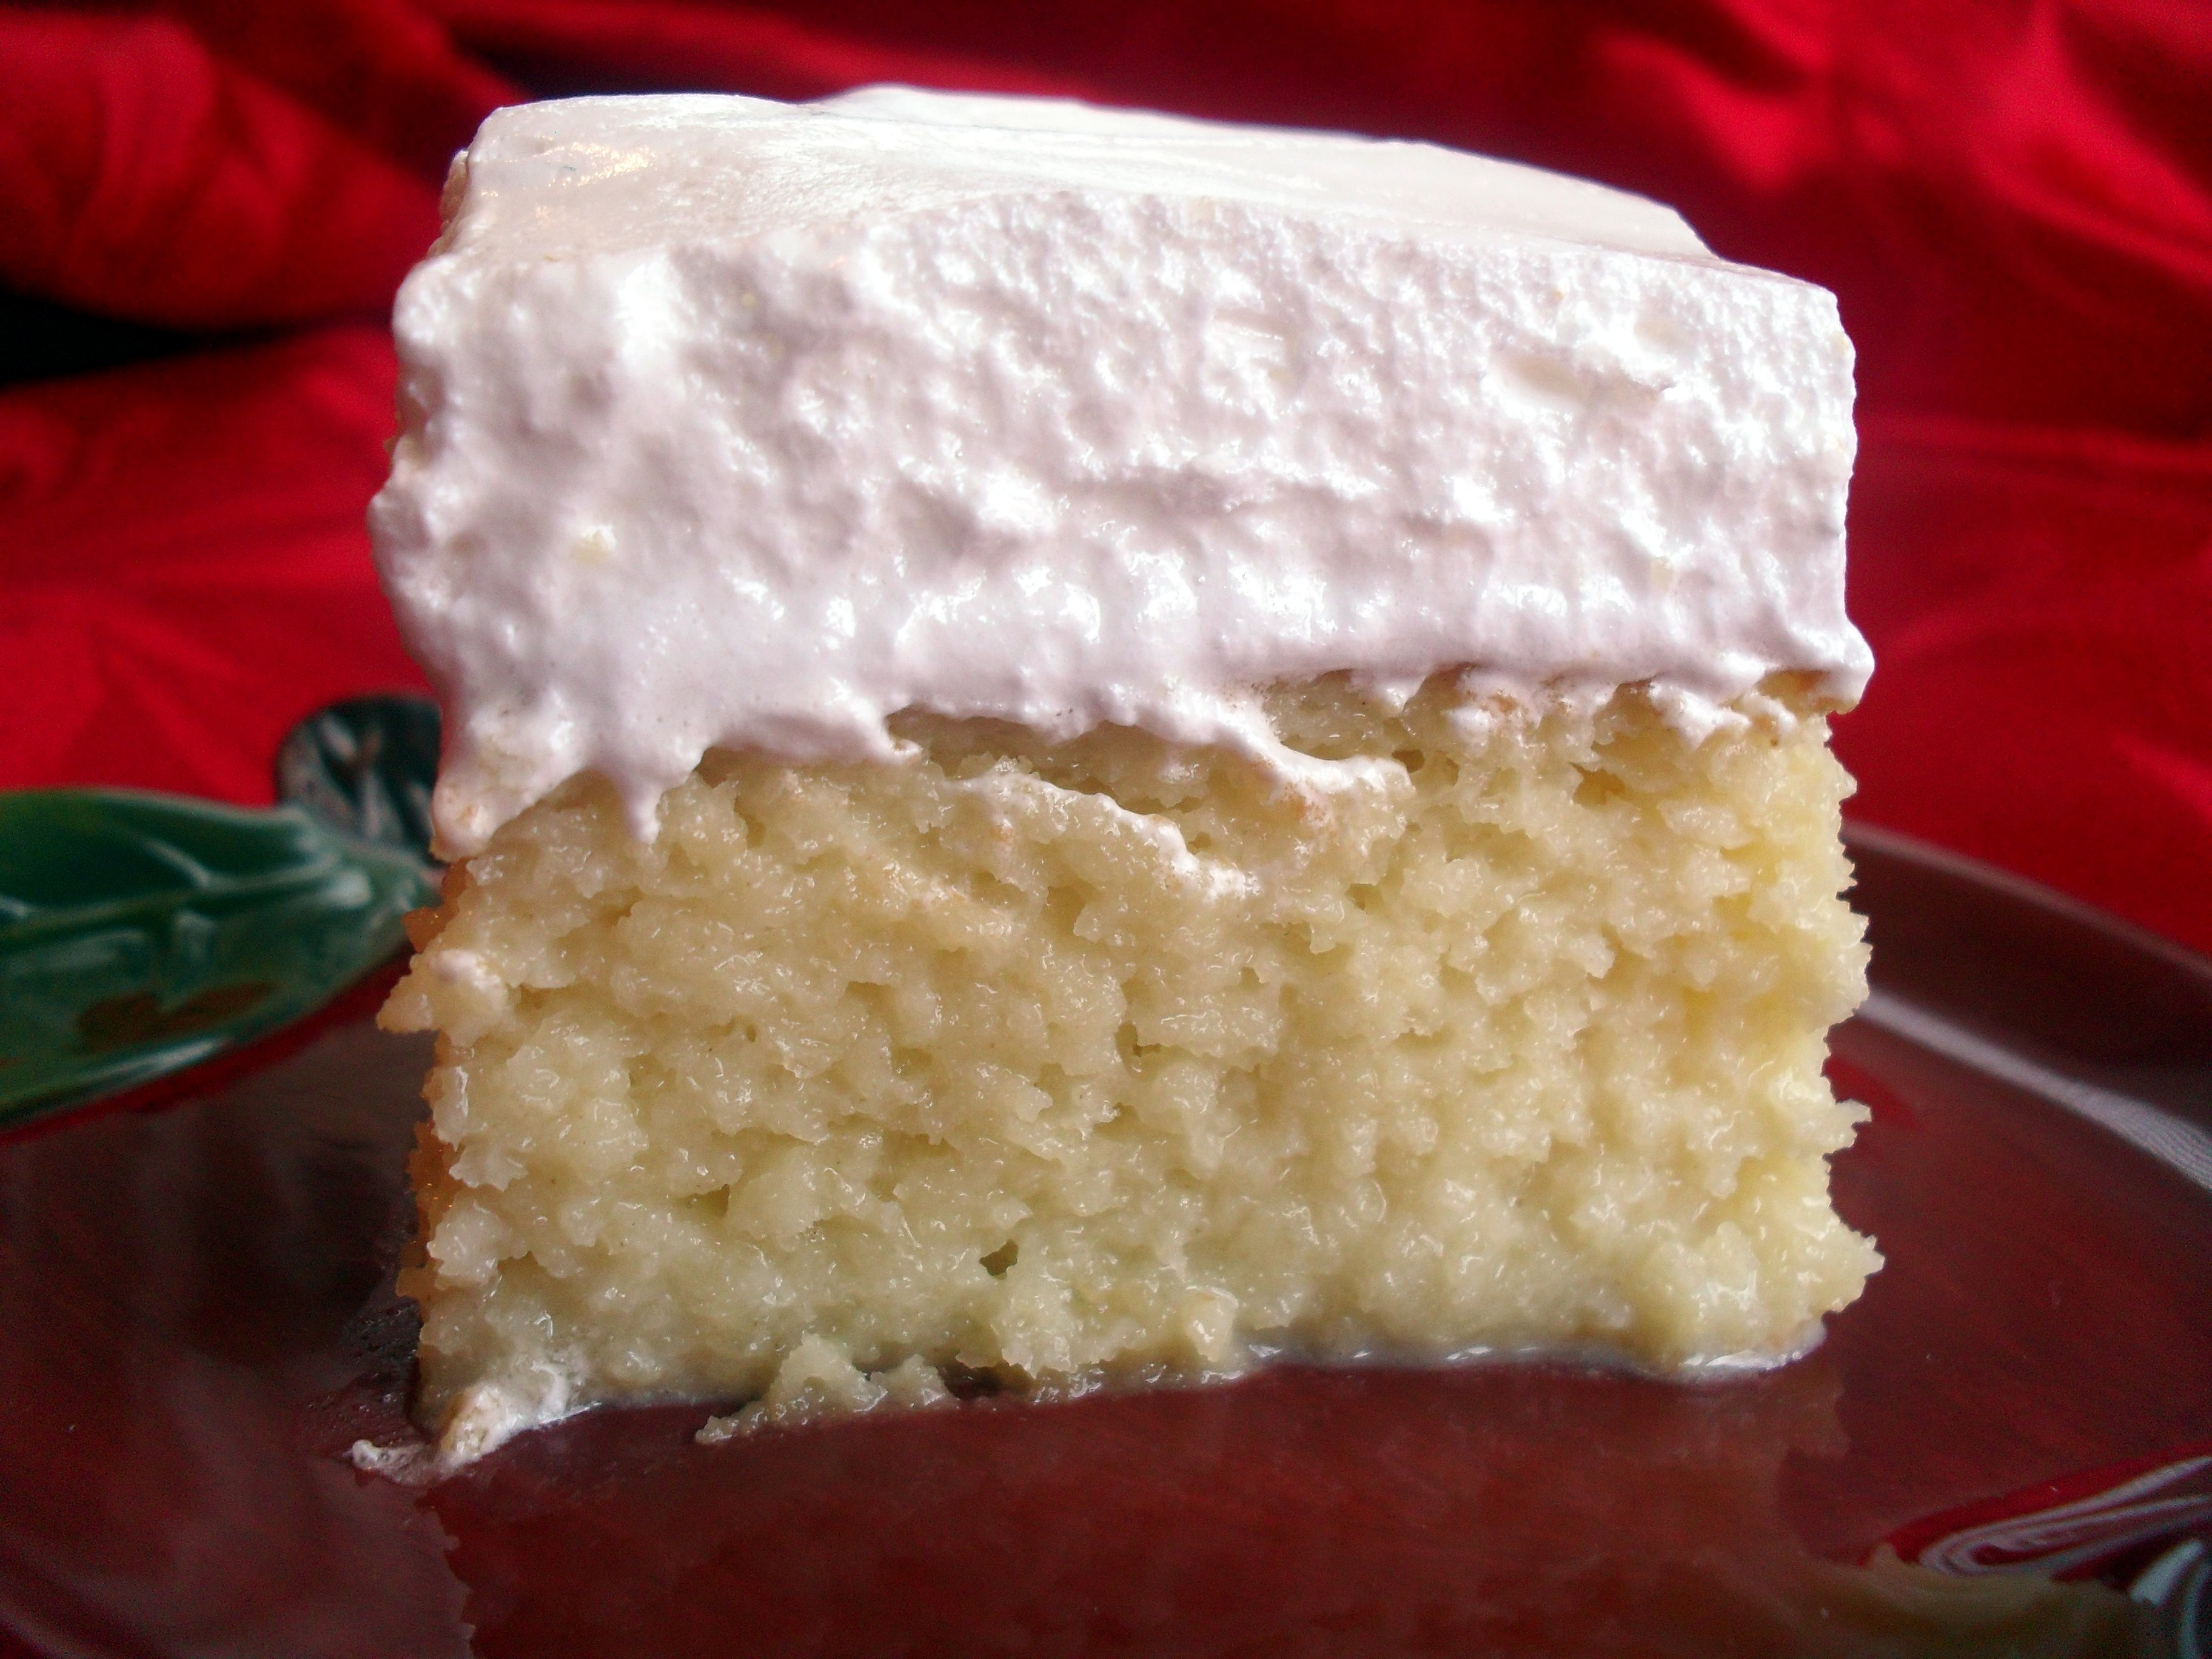 cake tres leches cake chocolate tres leches cake caribbean tres leches ...